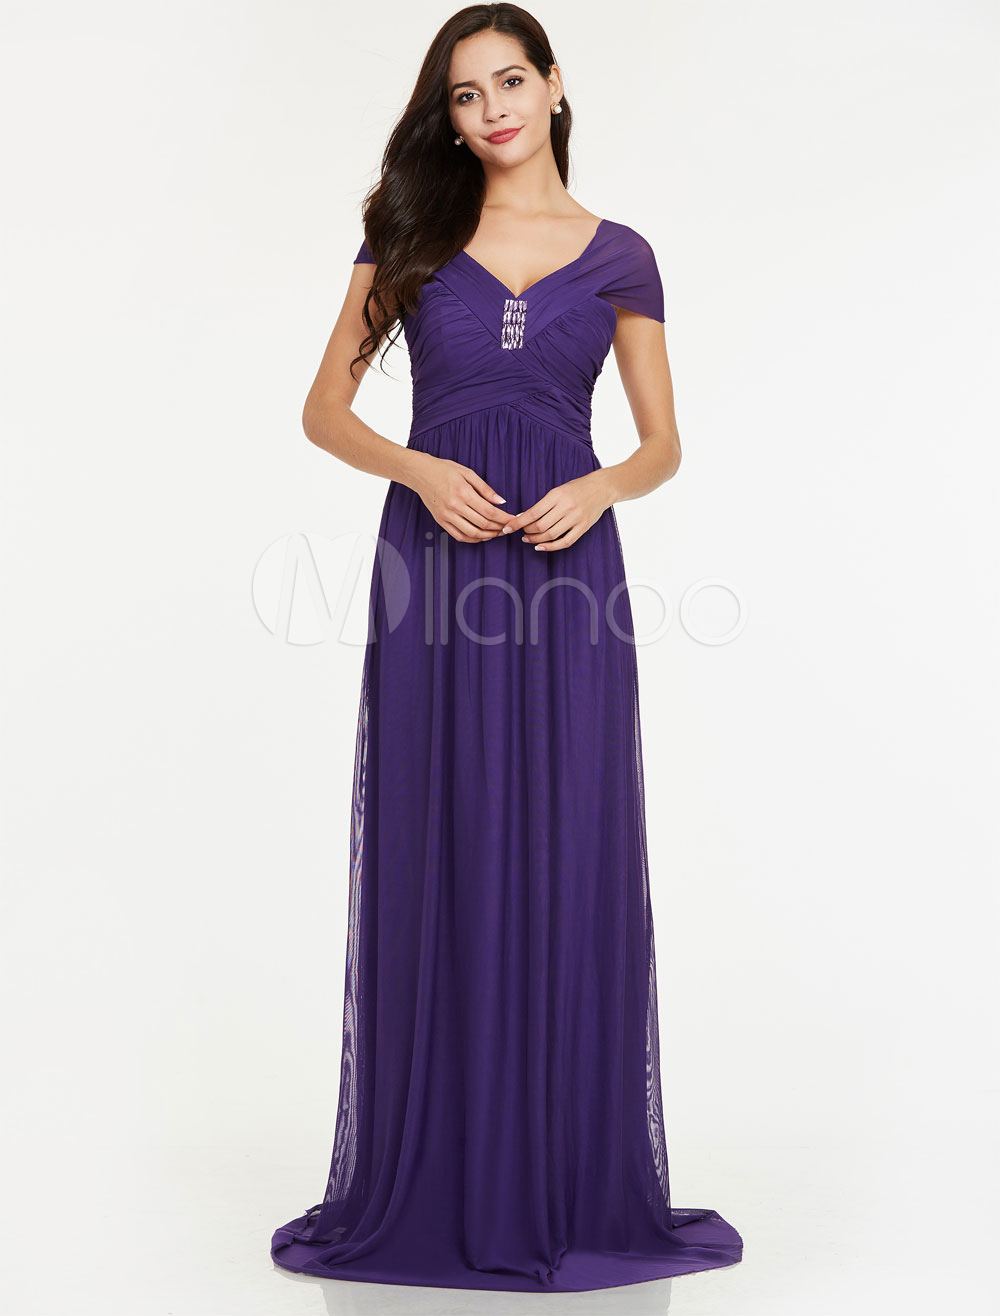 Buy Lavender Bridesmaid Dresses Long Prom Dresses Chiffon Ruched Beading V Neck Floor Length Wedding Party Dress for $74.79 in Milanoo store